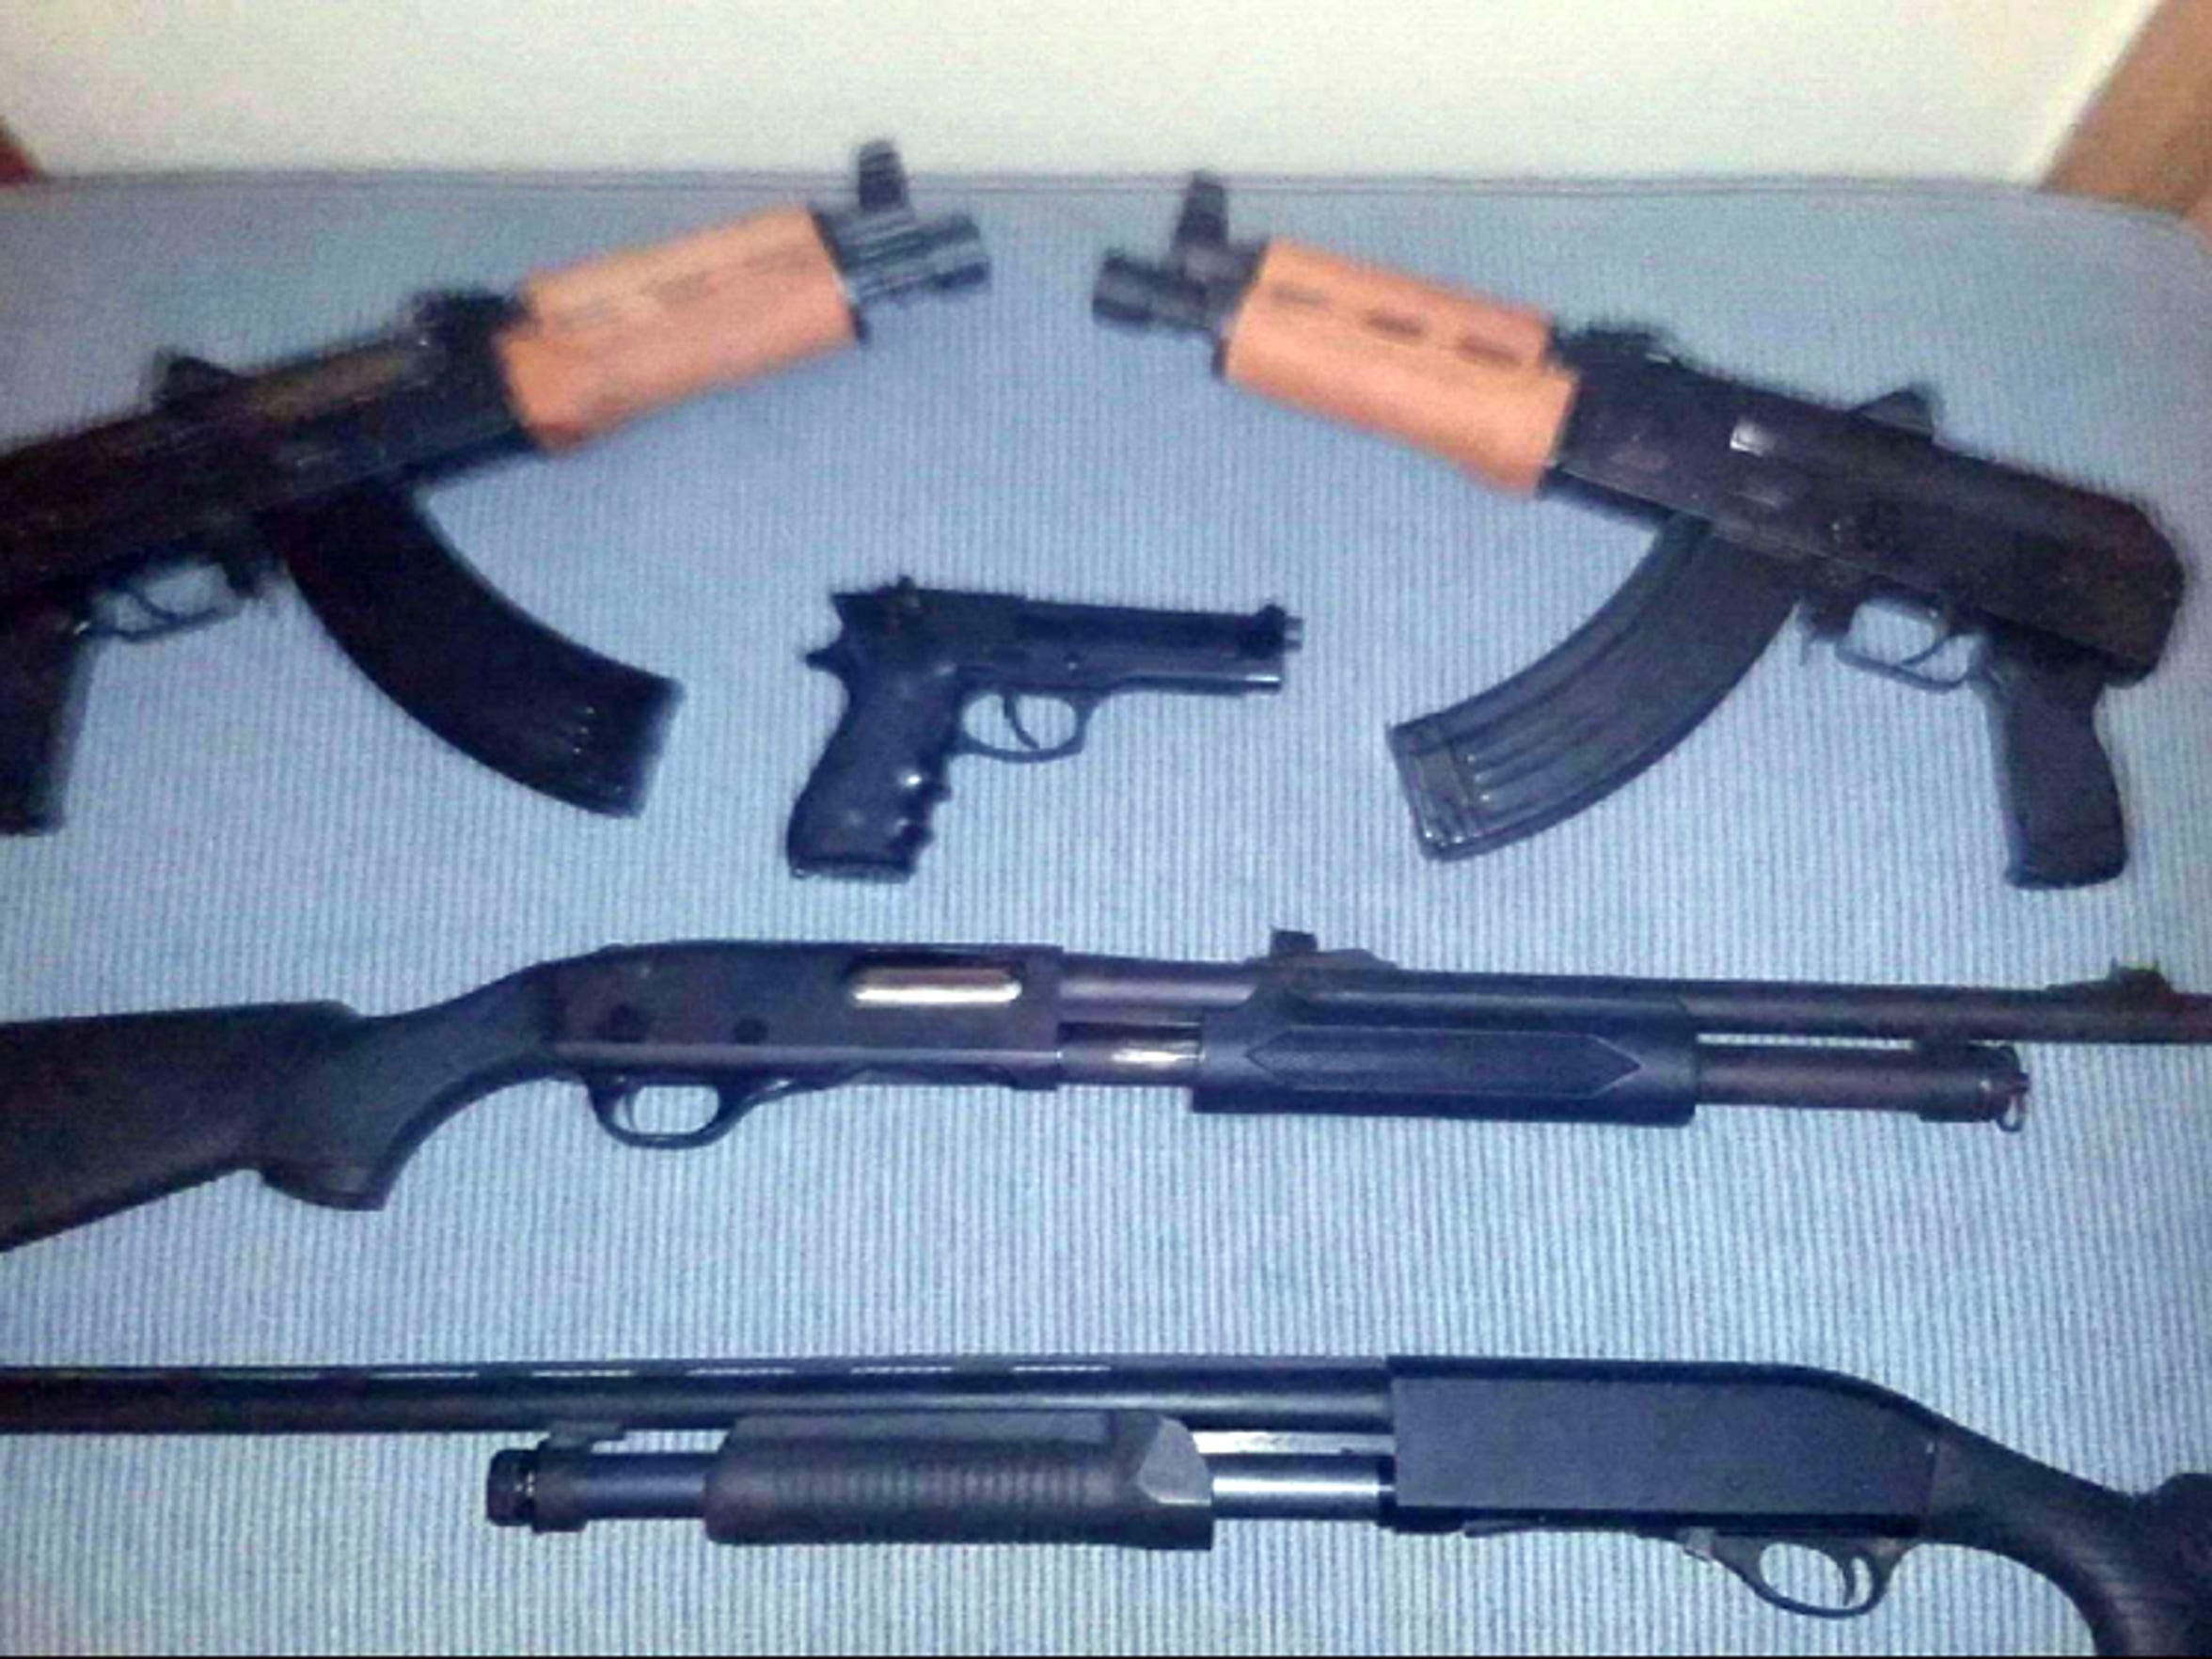 Guns in the collection of former gang member Rico include mini-AK semi-automatic pistols, top, which he bought privately without a background check. He bought the 9-millimeter Beretta handgun and the pump-action rifles at a gun show in Black River Falls, Wis. through private vendors, also without a background check.